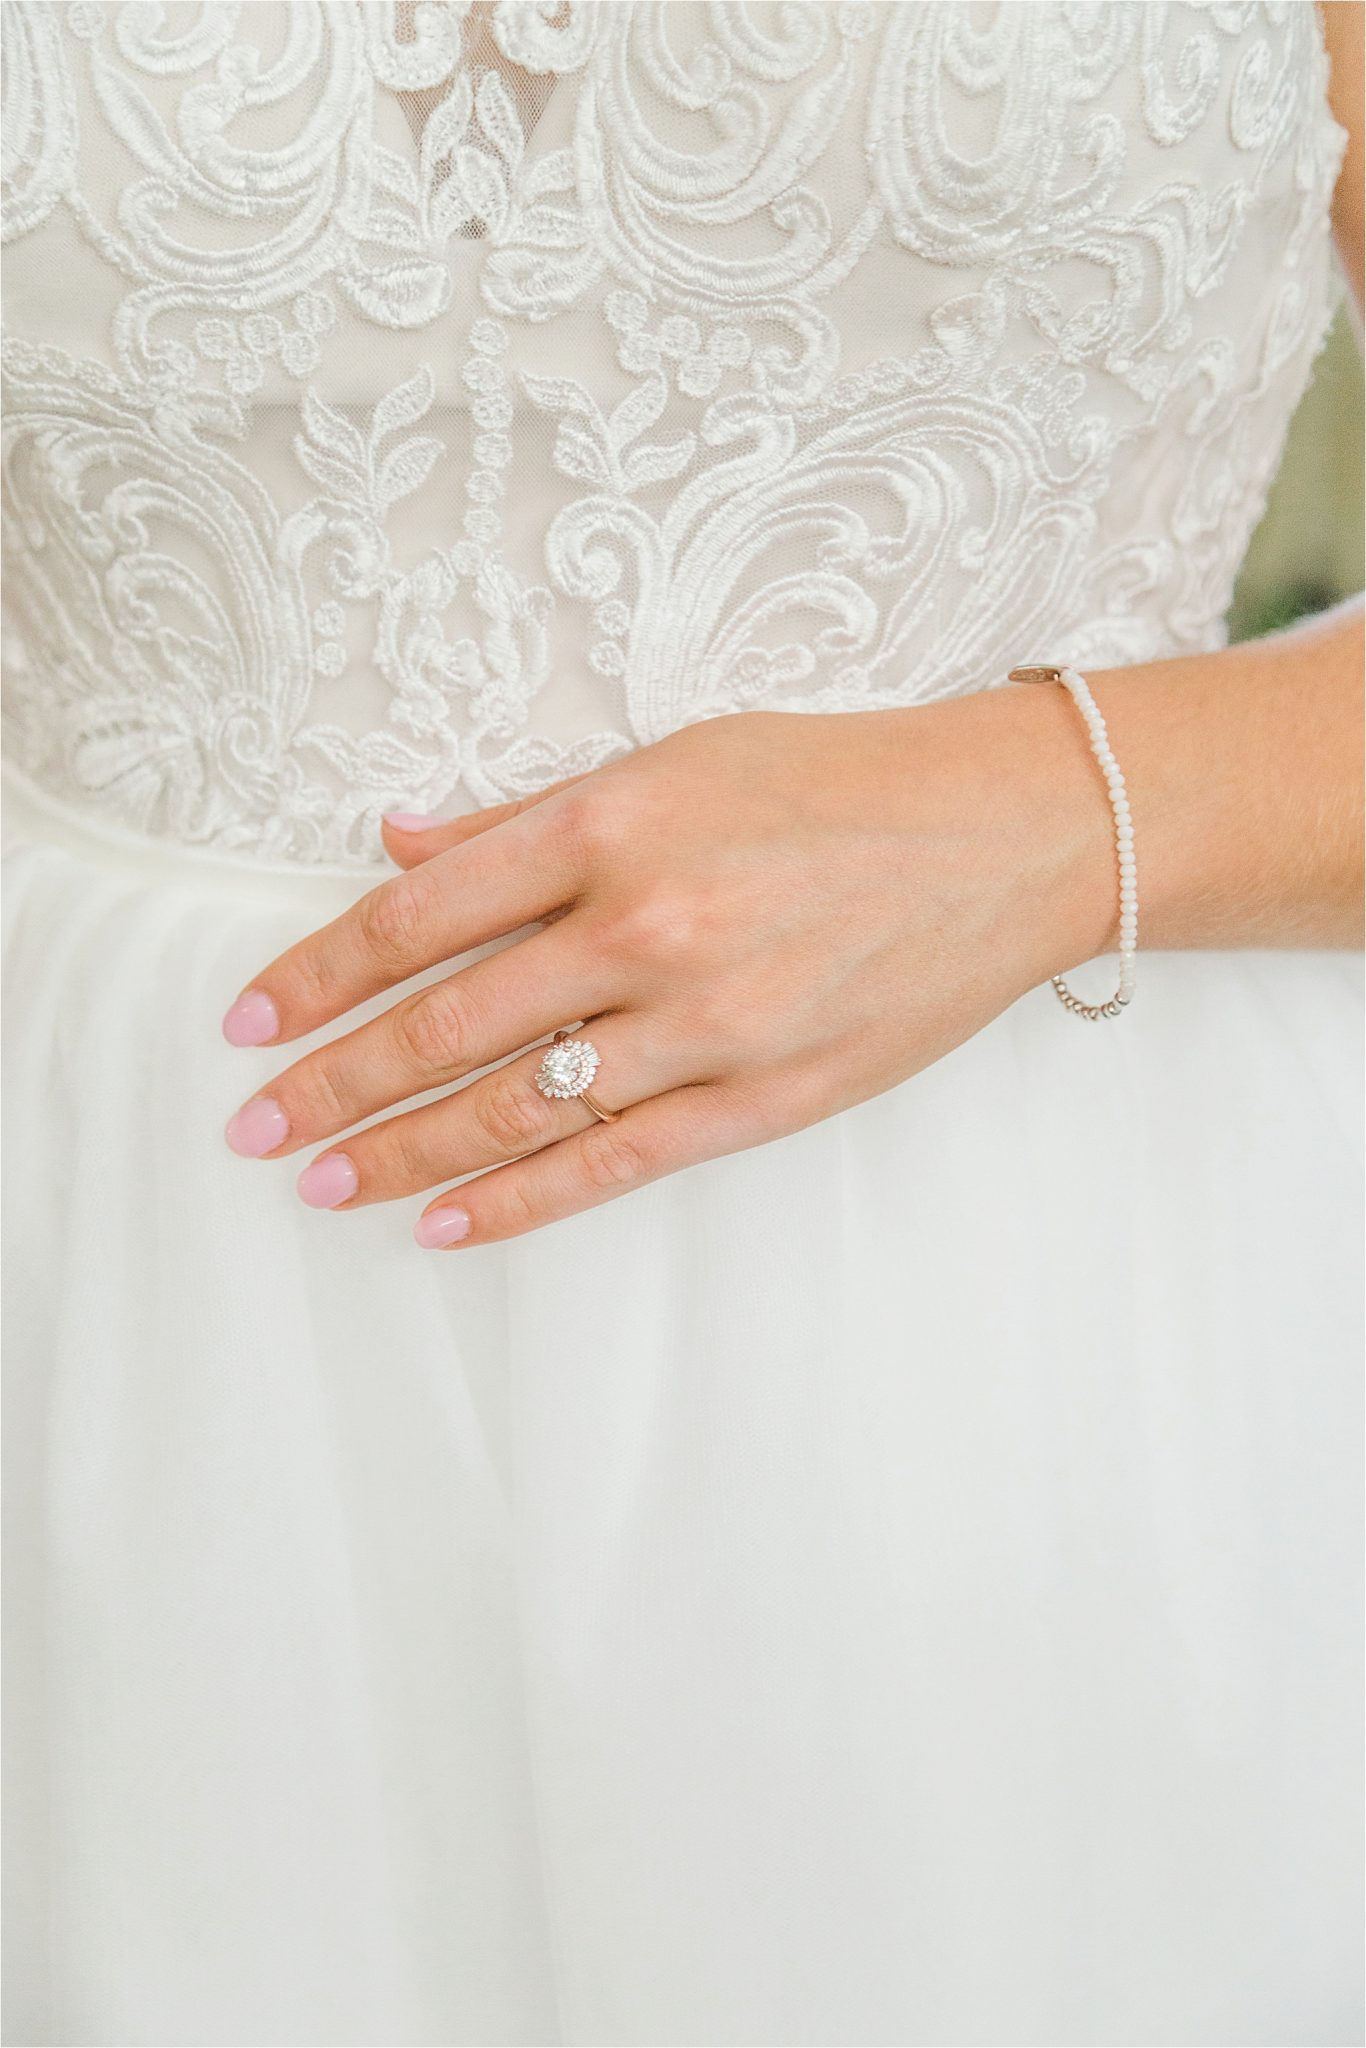 a-line-wedding-gown-lace-detail-unique-wedding-ring-pearls